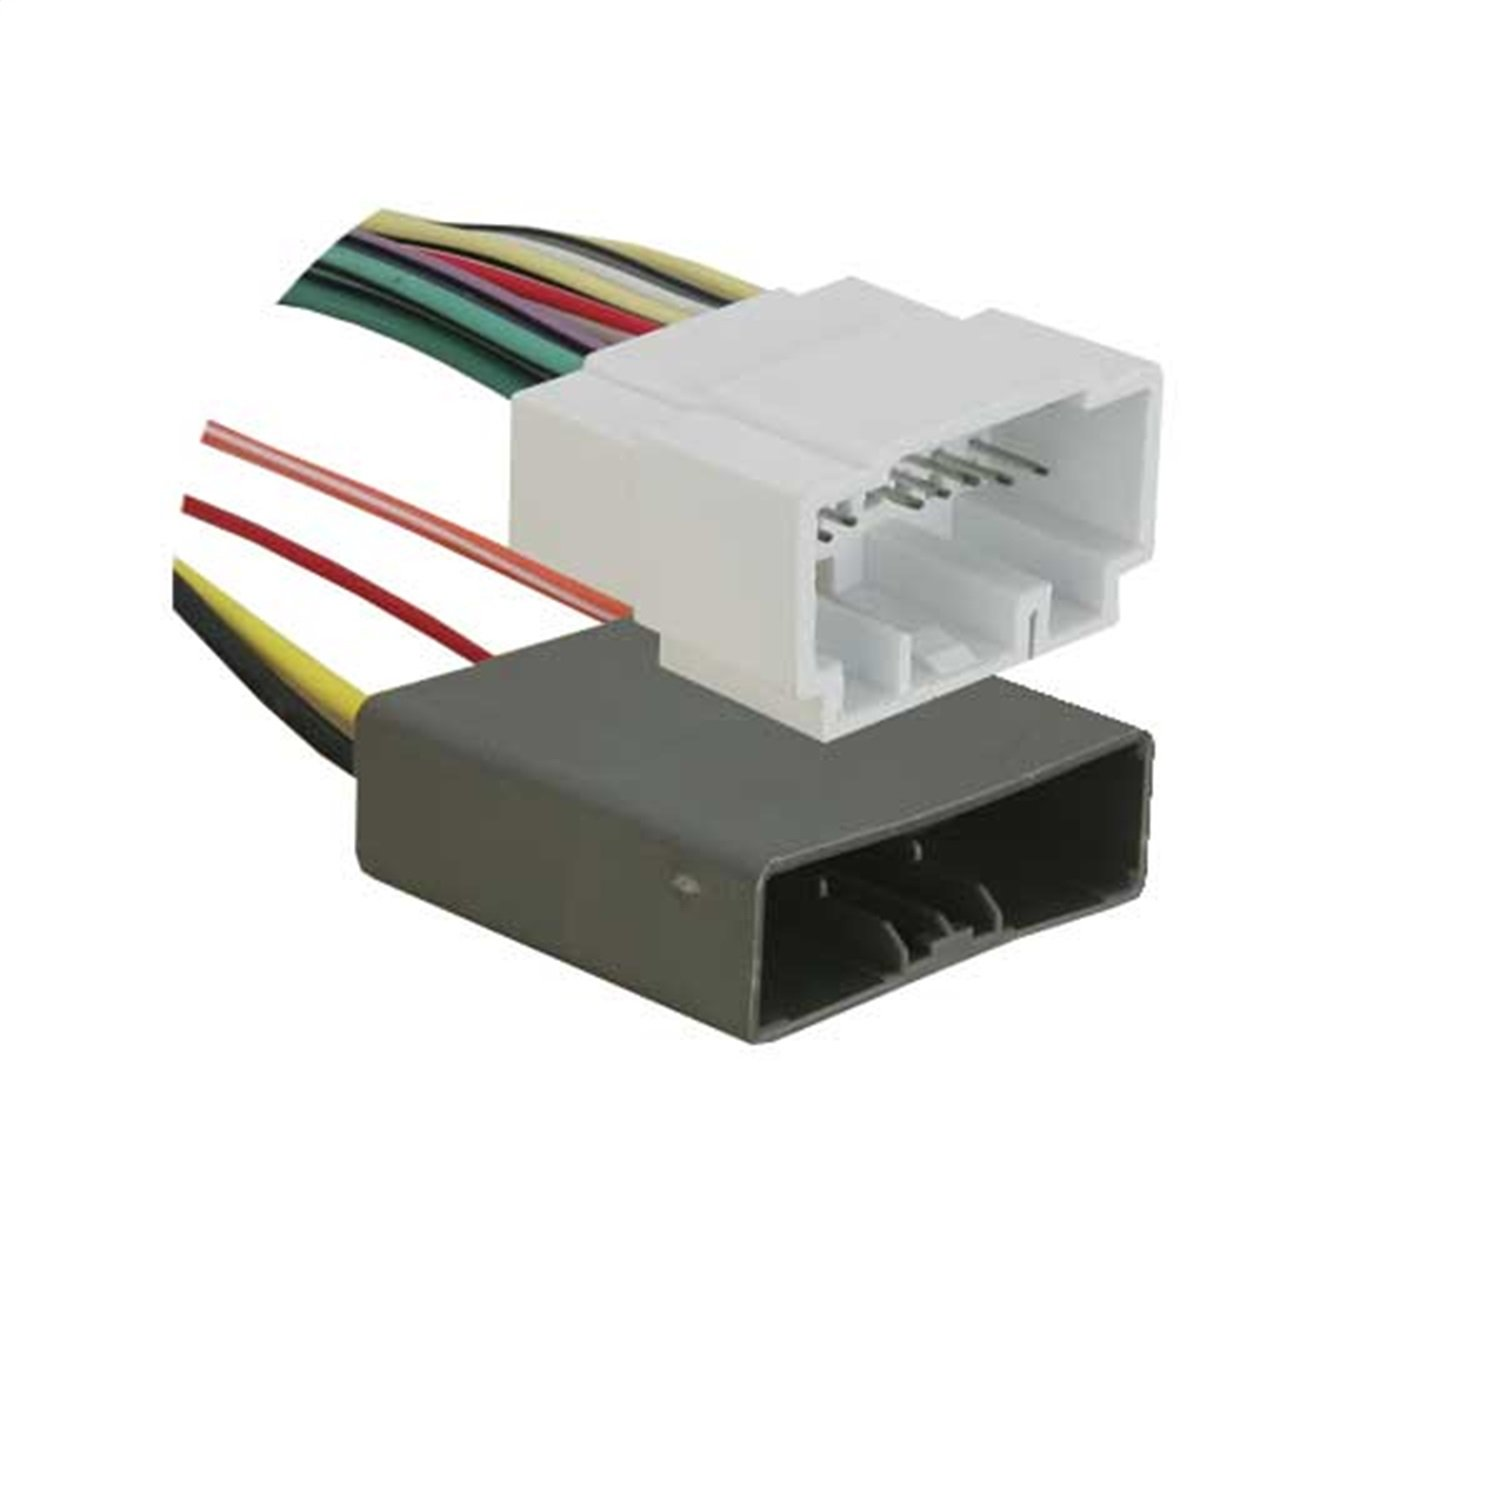 Metra 70 1727 Factory Amplifier Bypass Harness For 2006 Wiring Honda Civic Coupe Vehicles Car Electronics